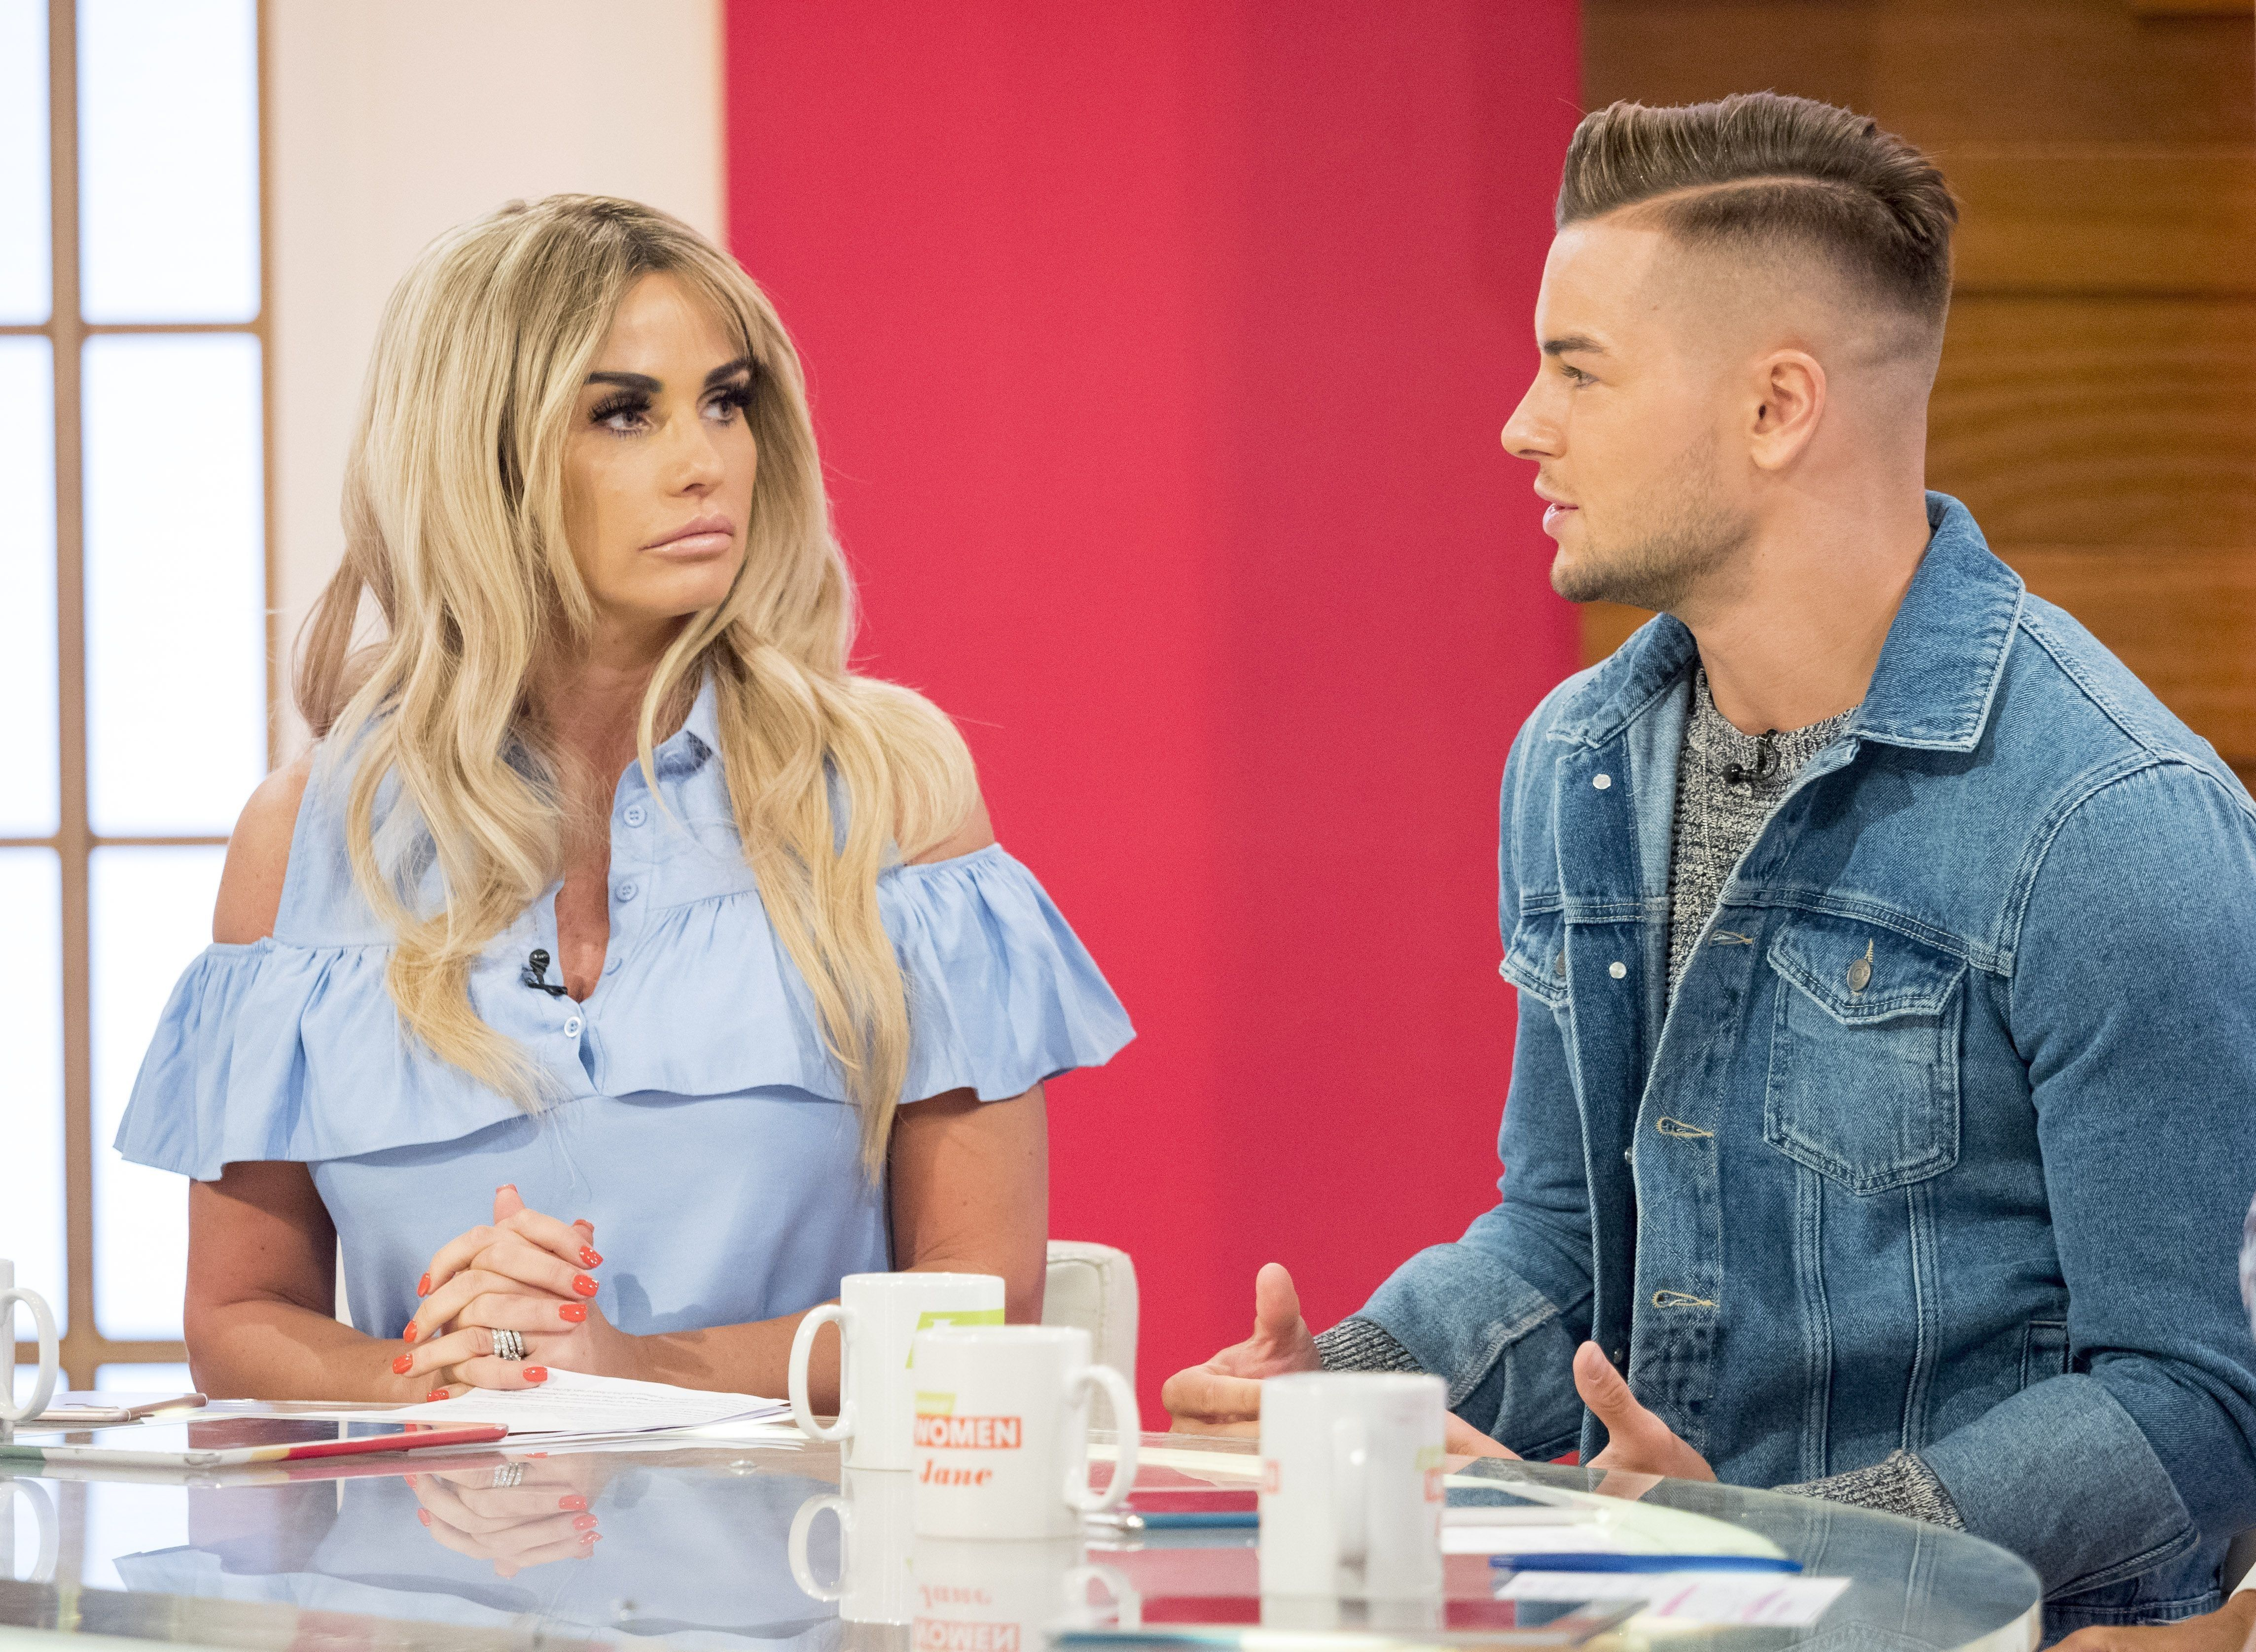 Katie Price Branded 'Rotten Piece Of S***' By 'Love Island's Chris Hughes In Furious Twitter